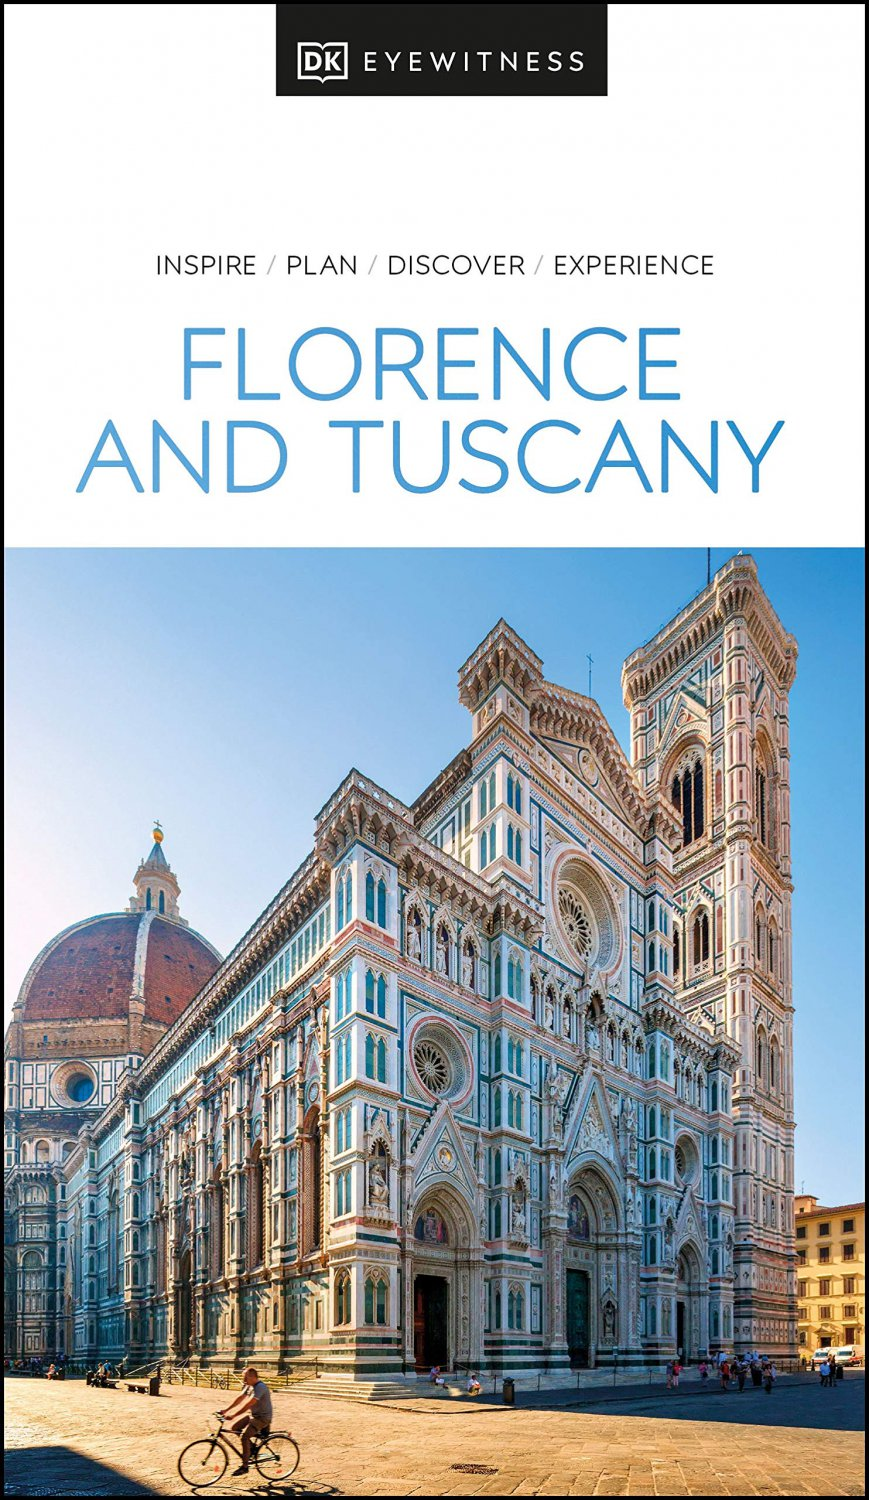 TRAVEL GUIDE BOOK ITALY DK Eyewitness Florence and Tuscany (Travel Guide) Paperback